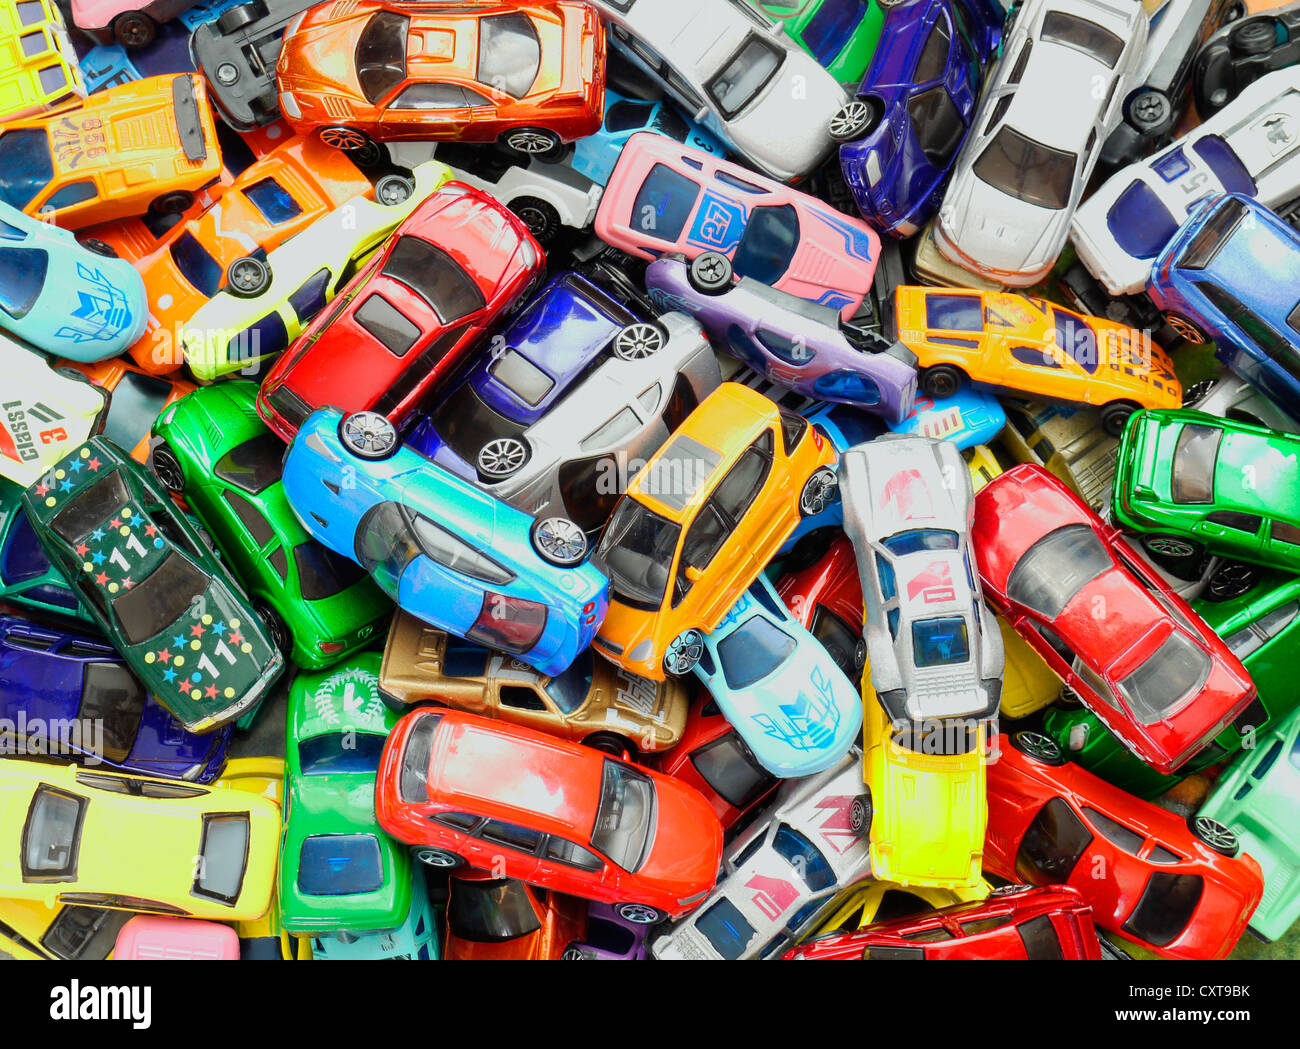 lots of toy cars in a pile stock photo 50936023 alamy. Black Bedroom Furniture Sets. Home Design Ideas